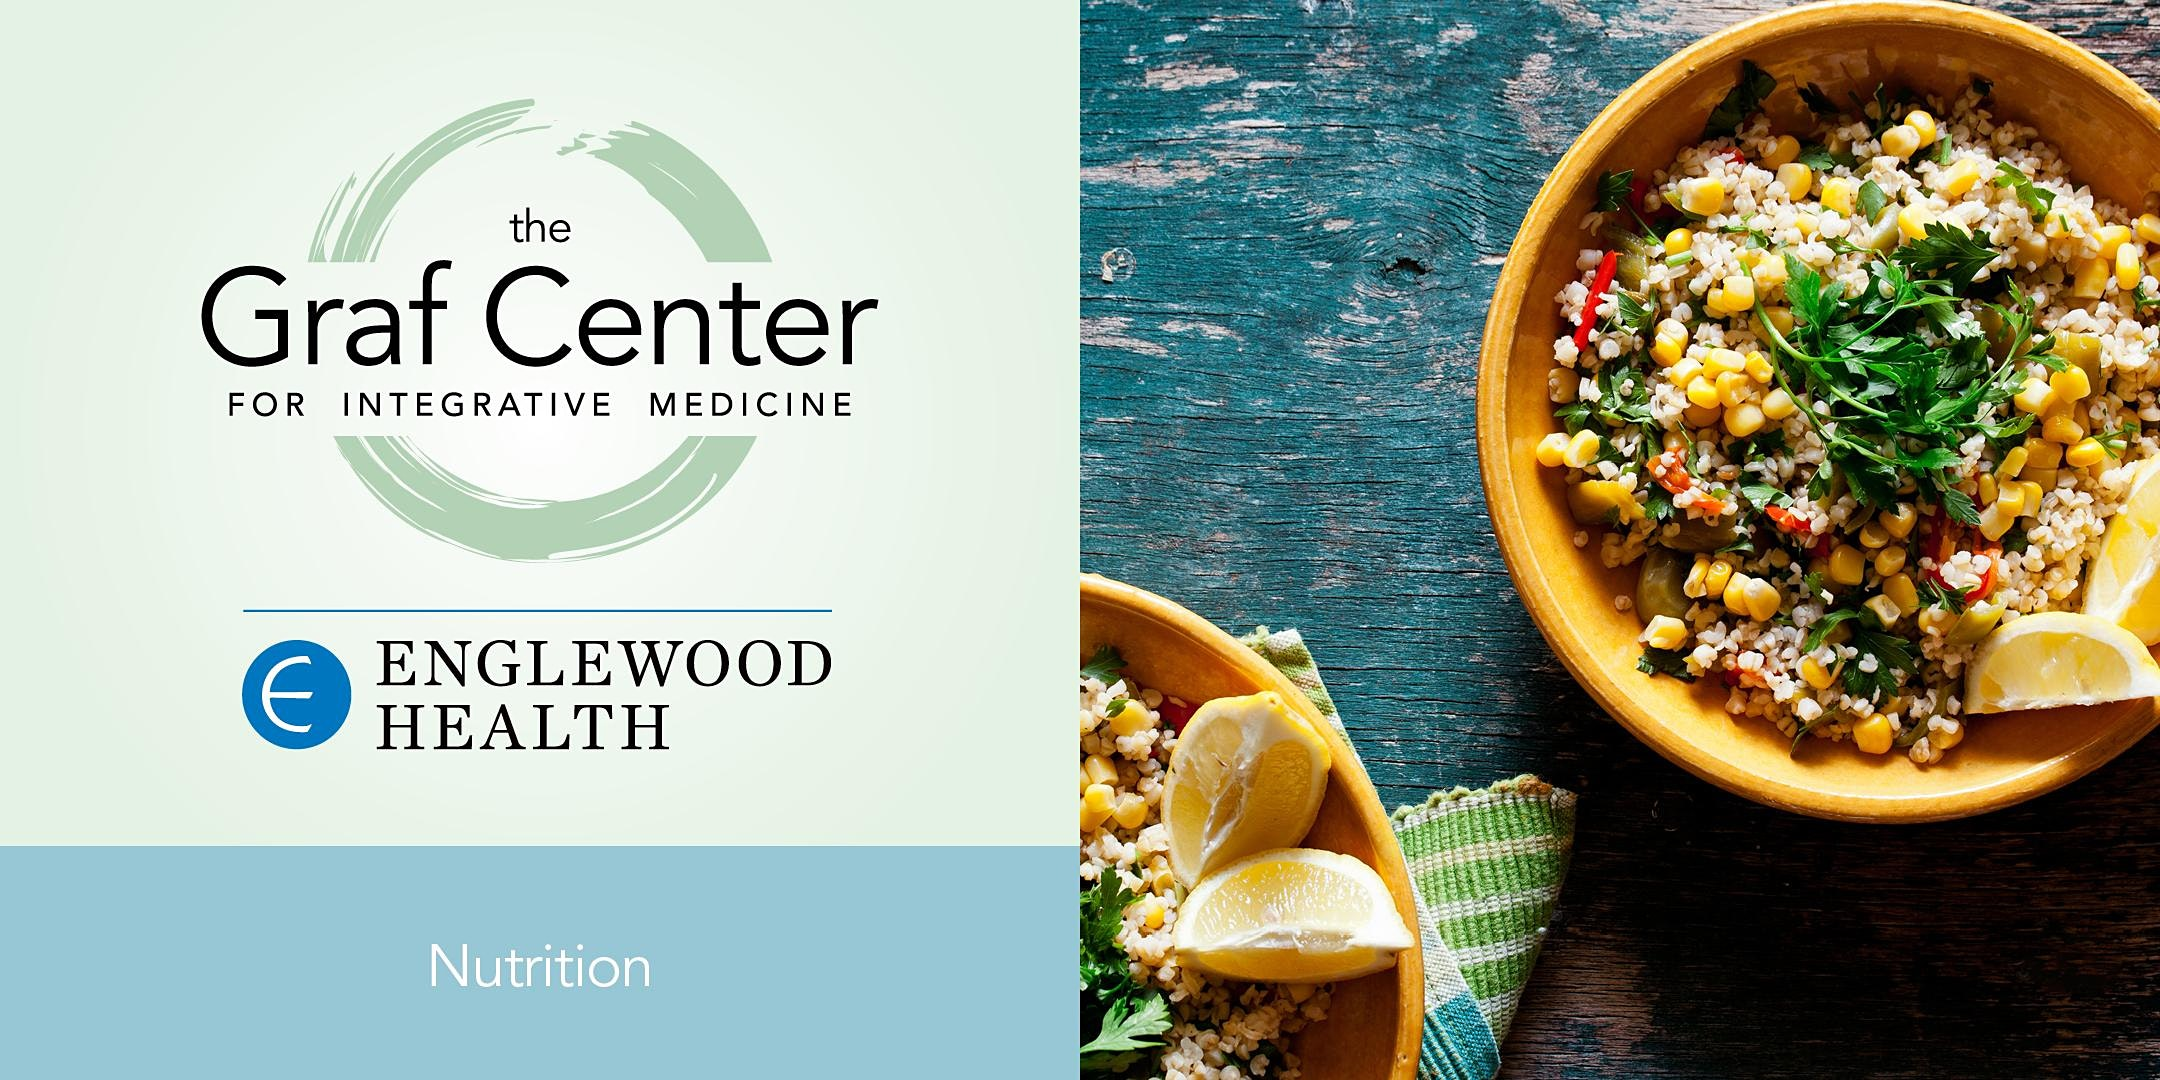 More info: Plant Proteins - September 22